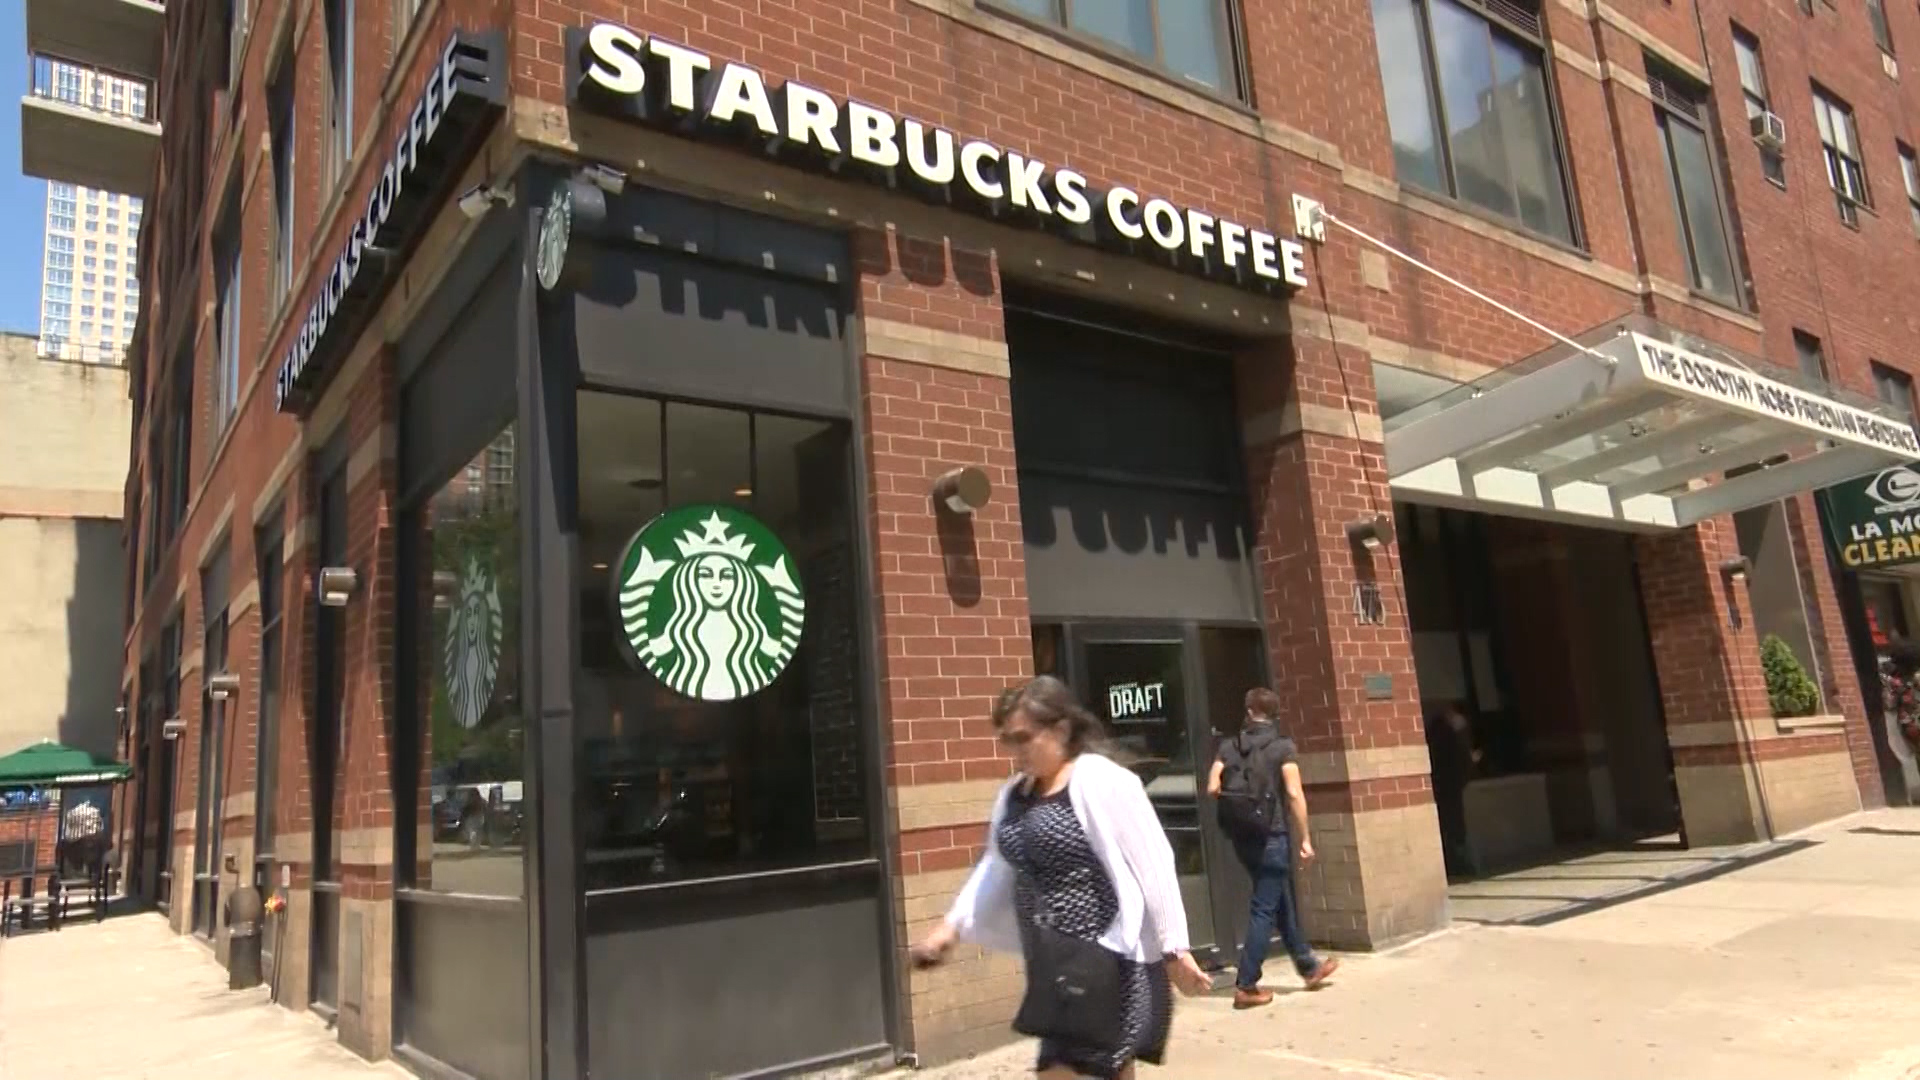 Starbucks outlets will close this afternoon